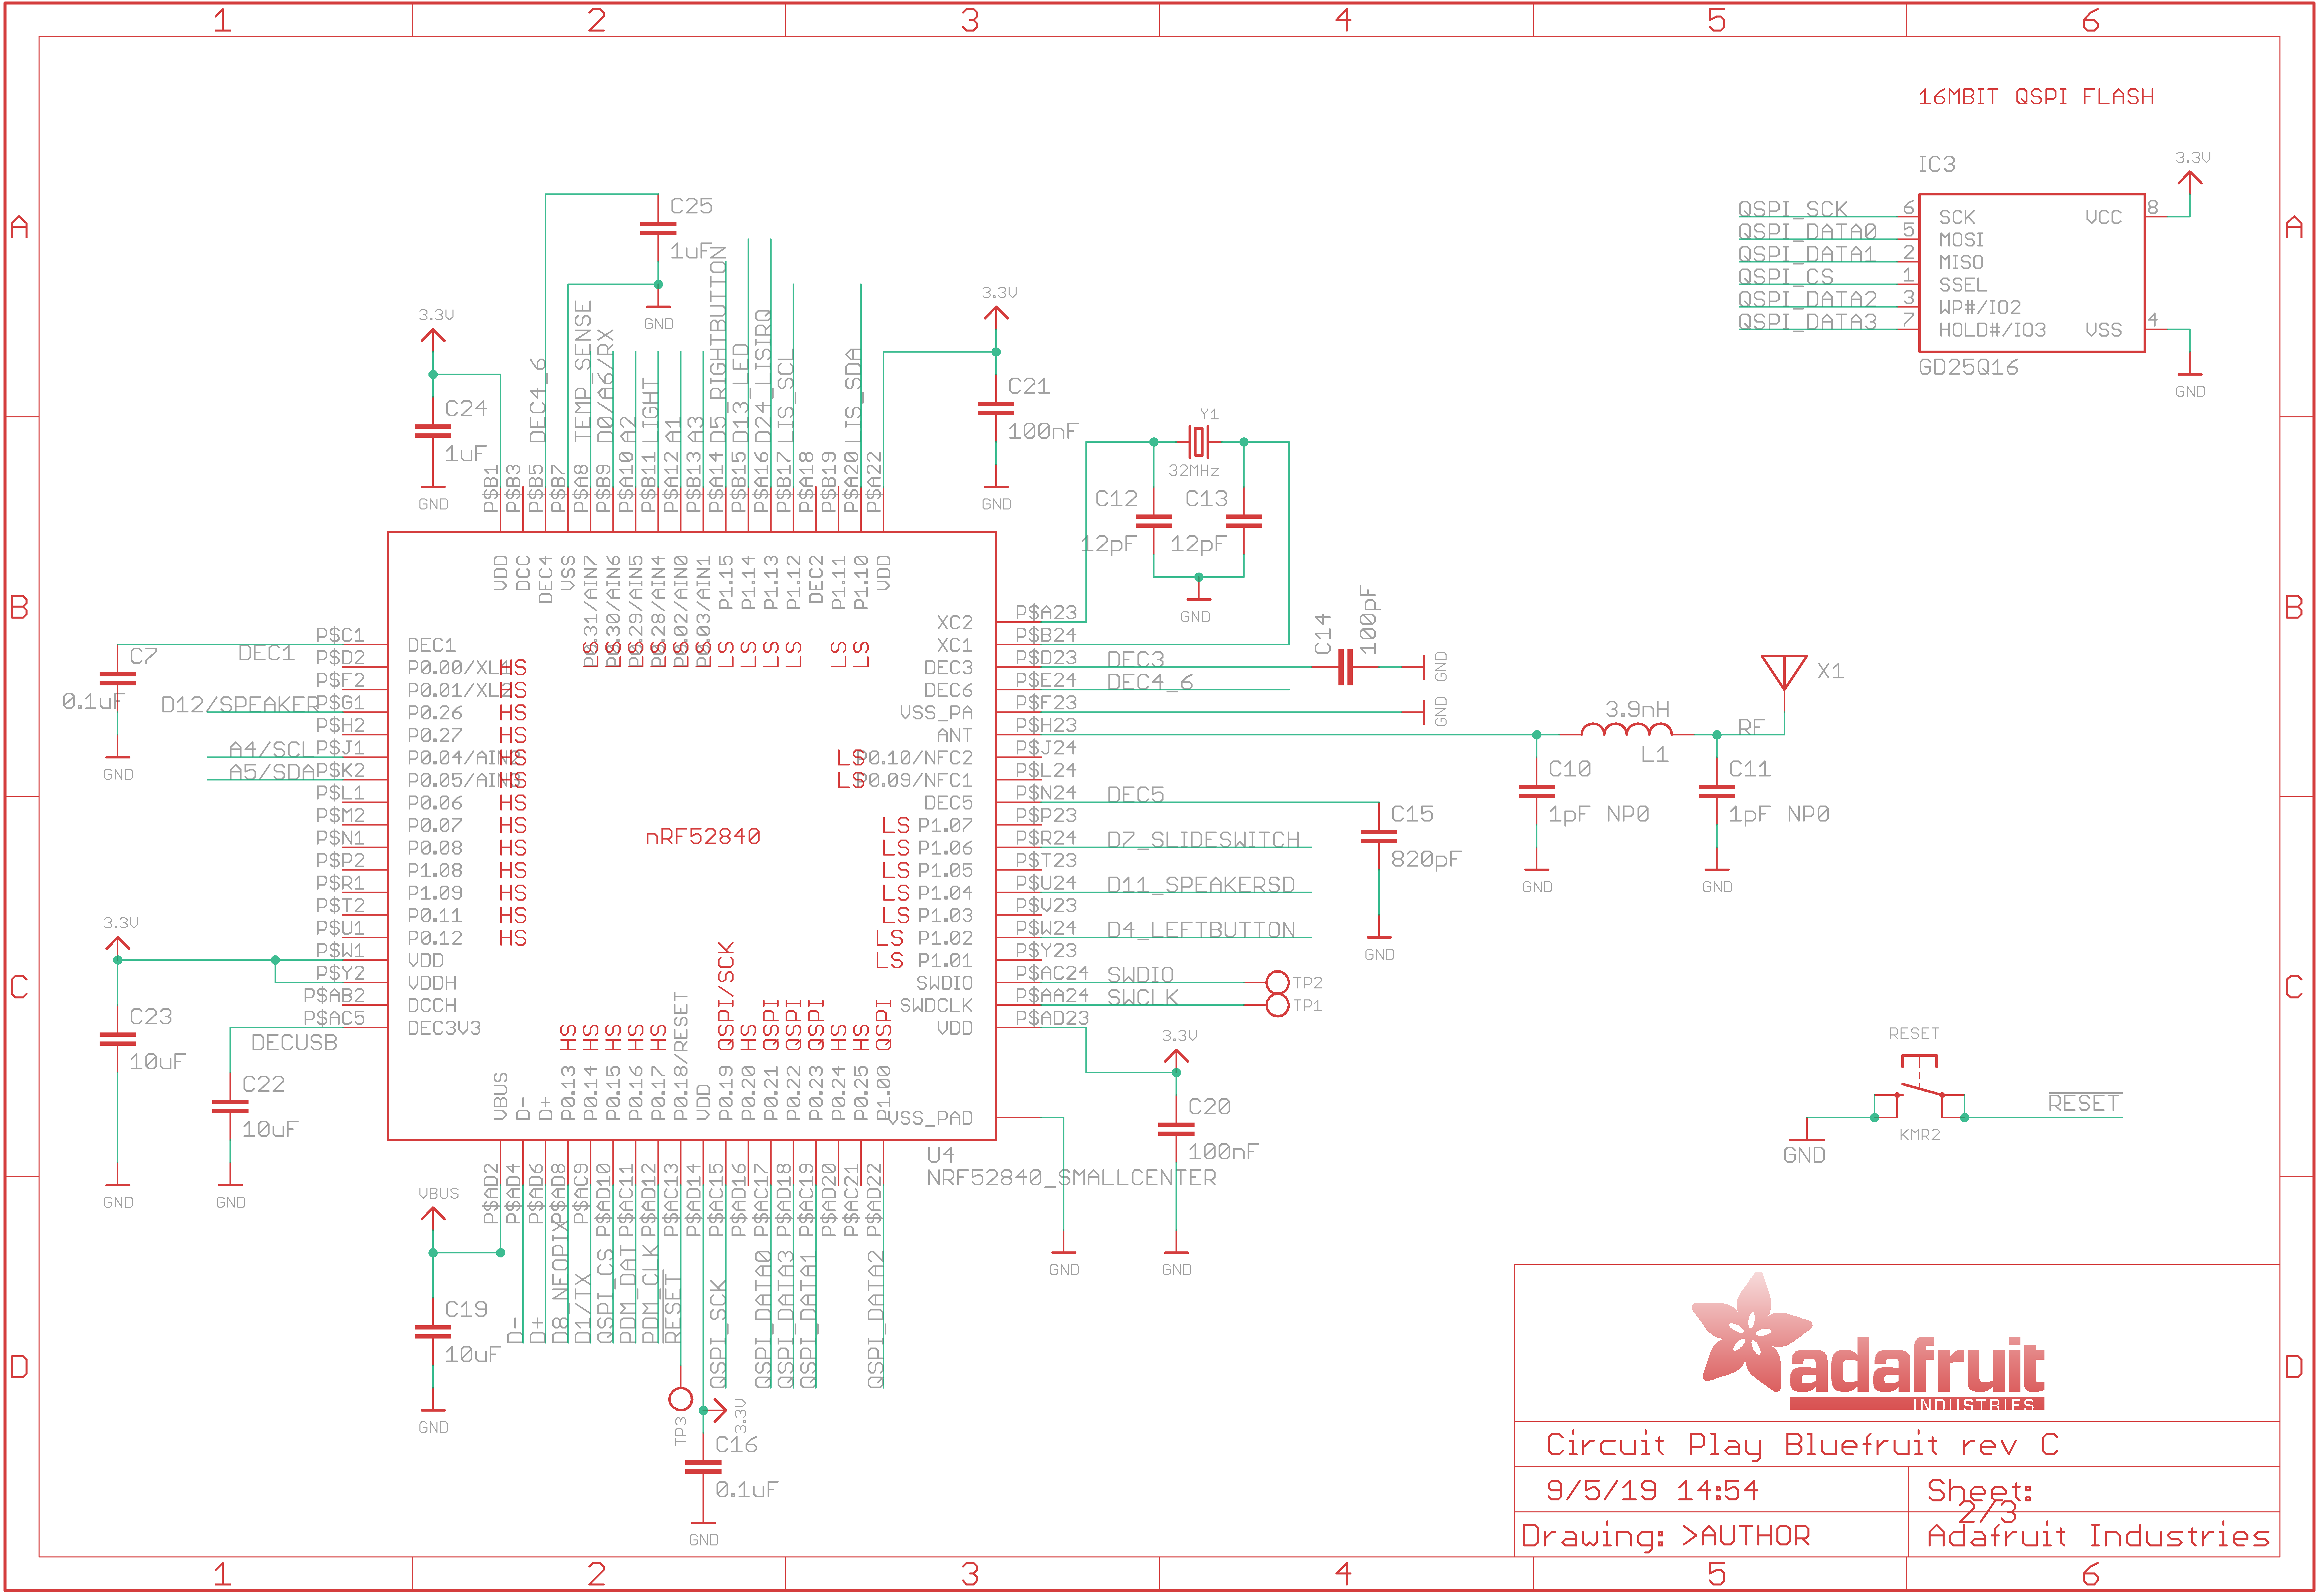 adafruit_products_Circuit_Playground_Bluefruit_Sch_2.png